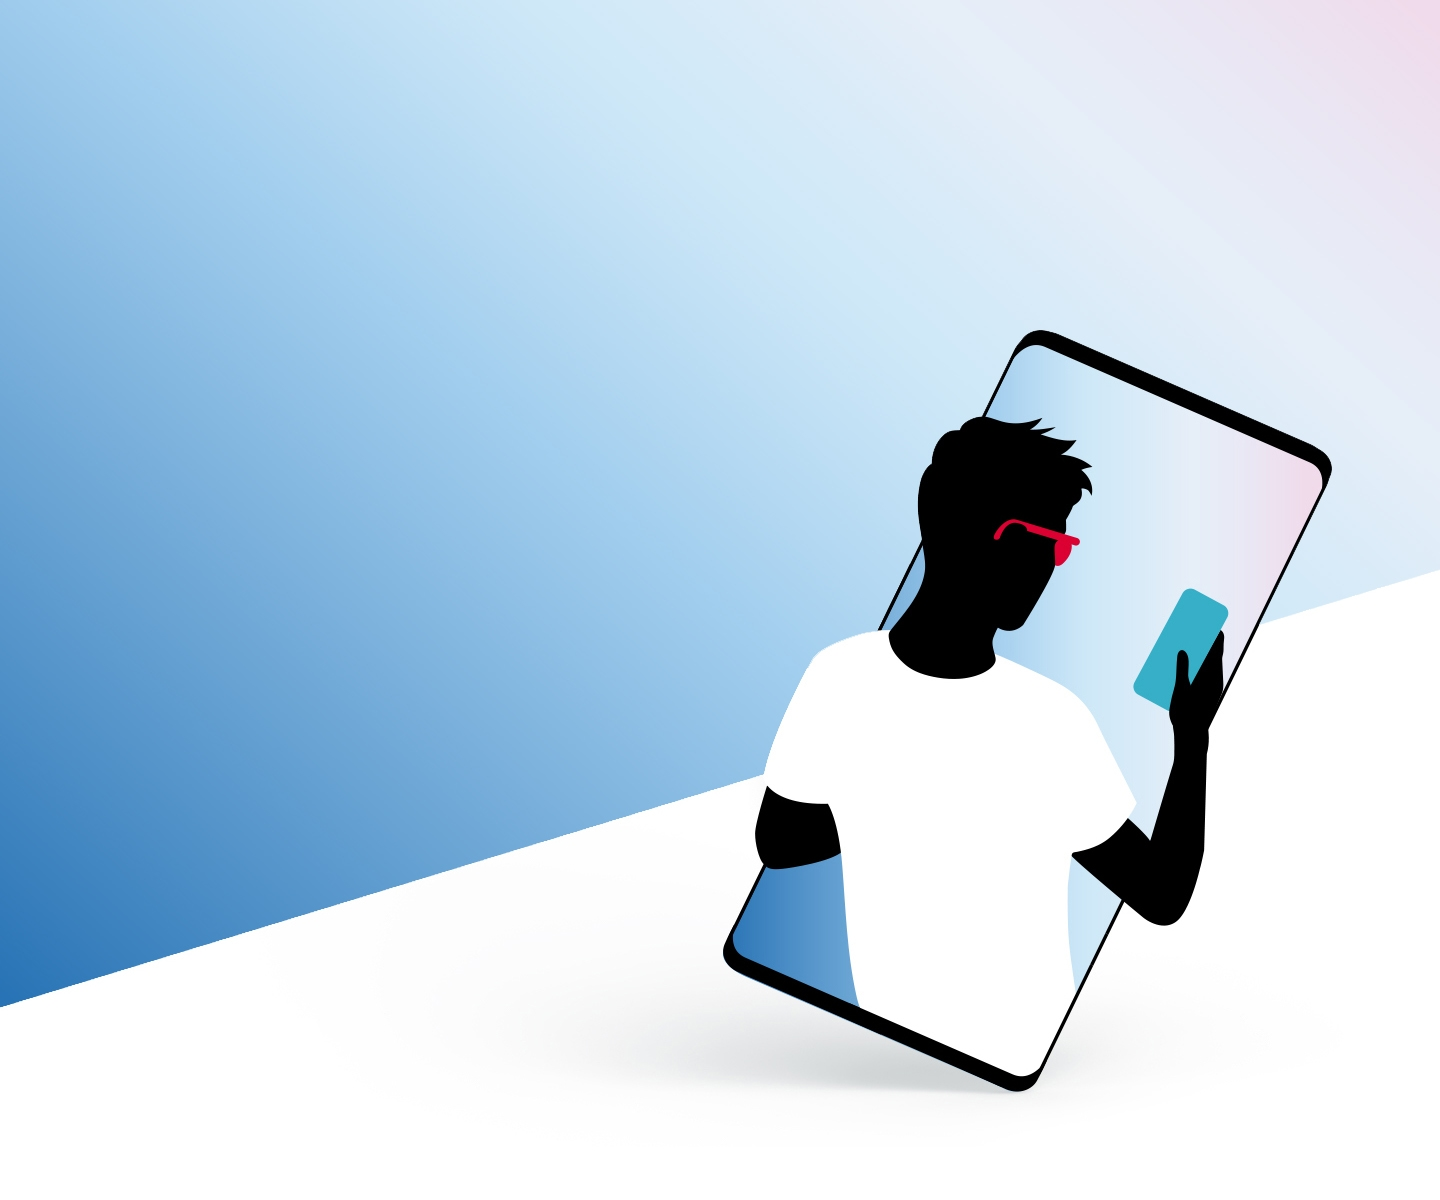 Within a mobile device we see an illustration of a businessman with red sunglasses holding a blue Galaxy phone.